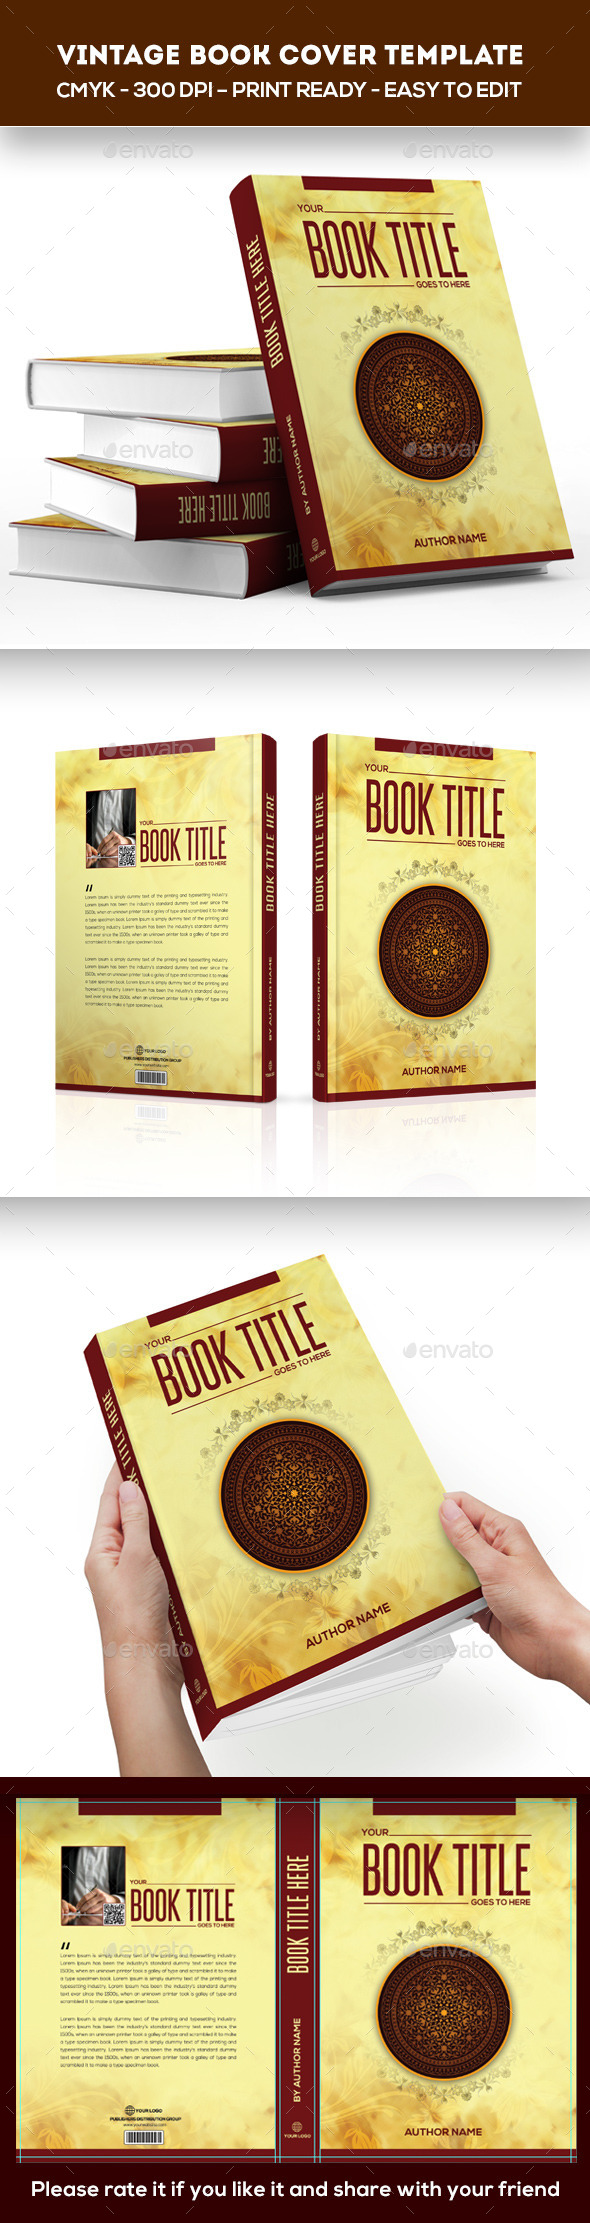 GraphicRiver Vintage Book Cover Template 10843191